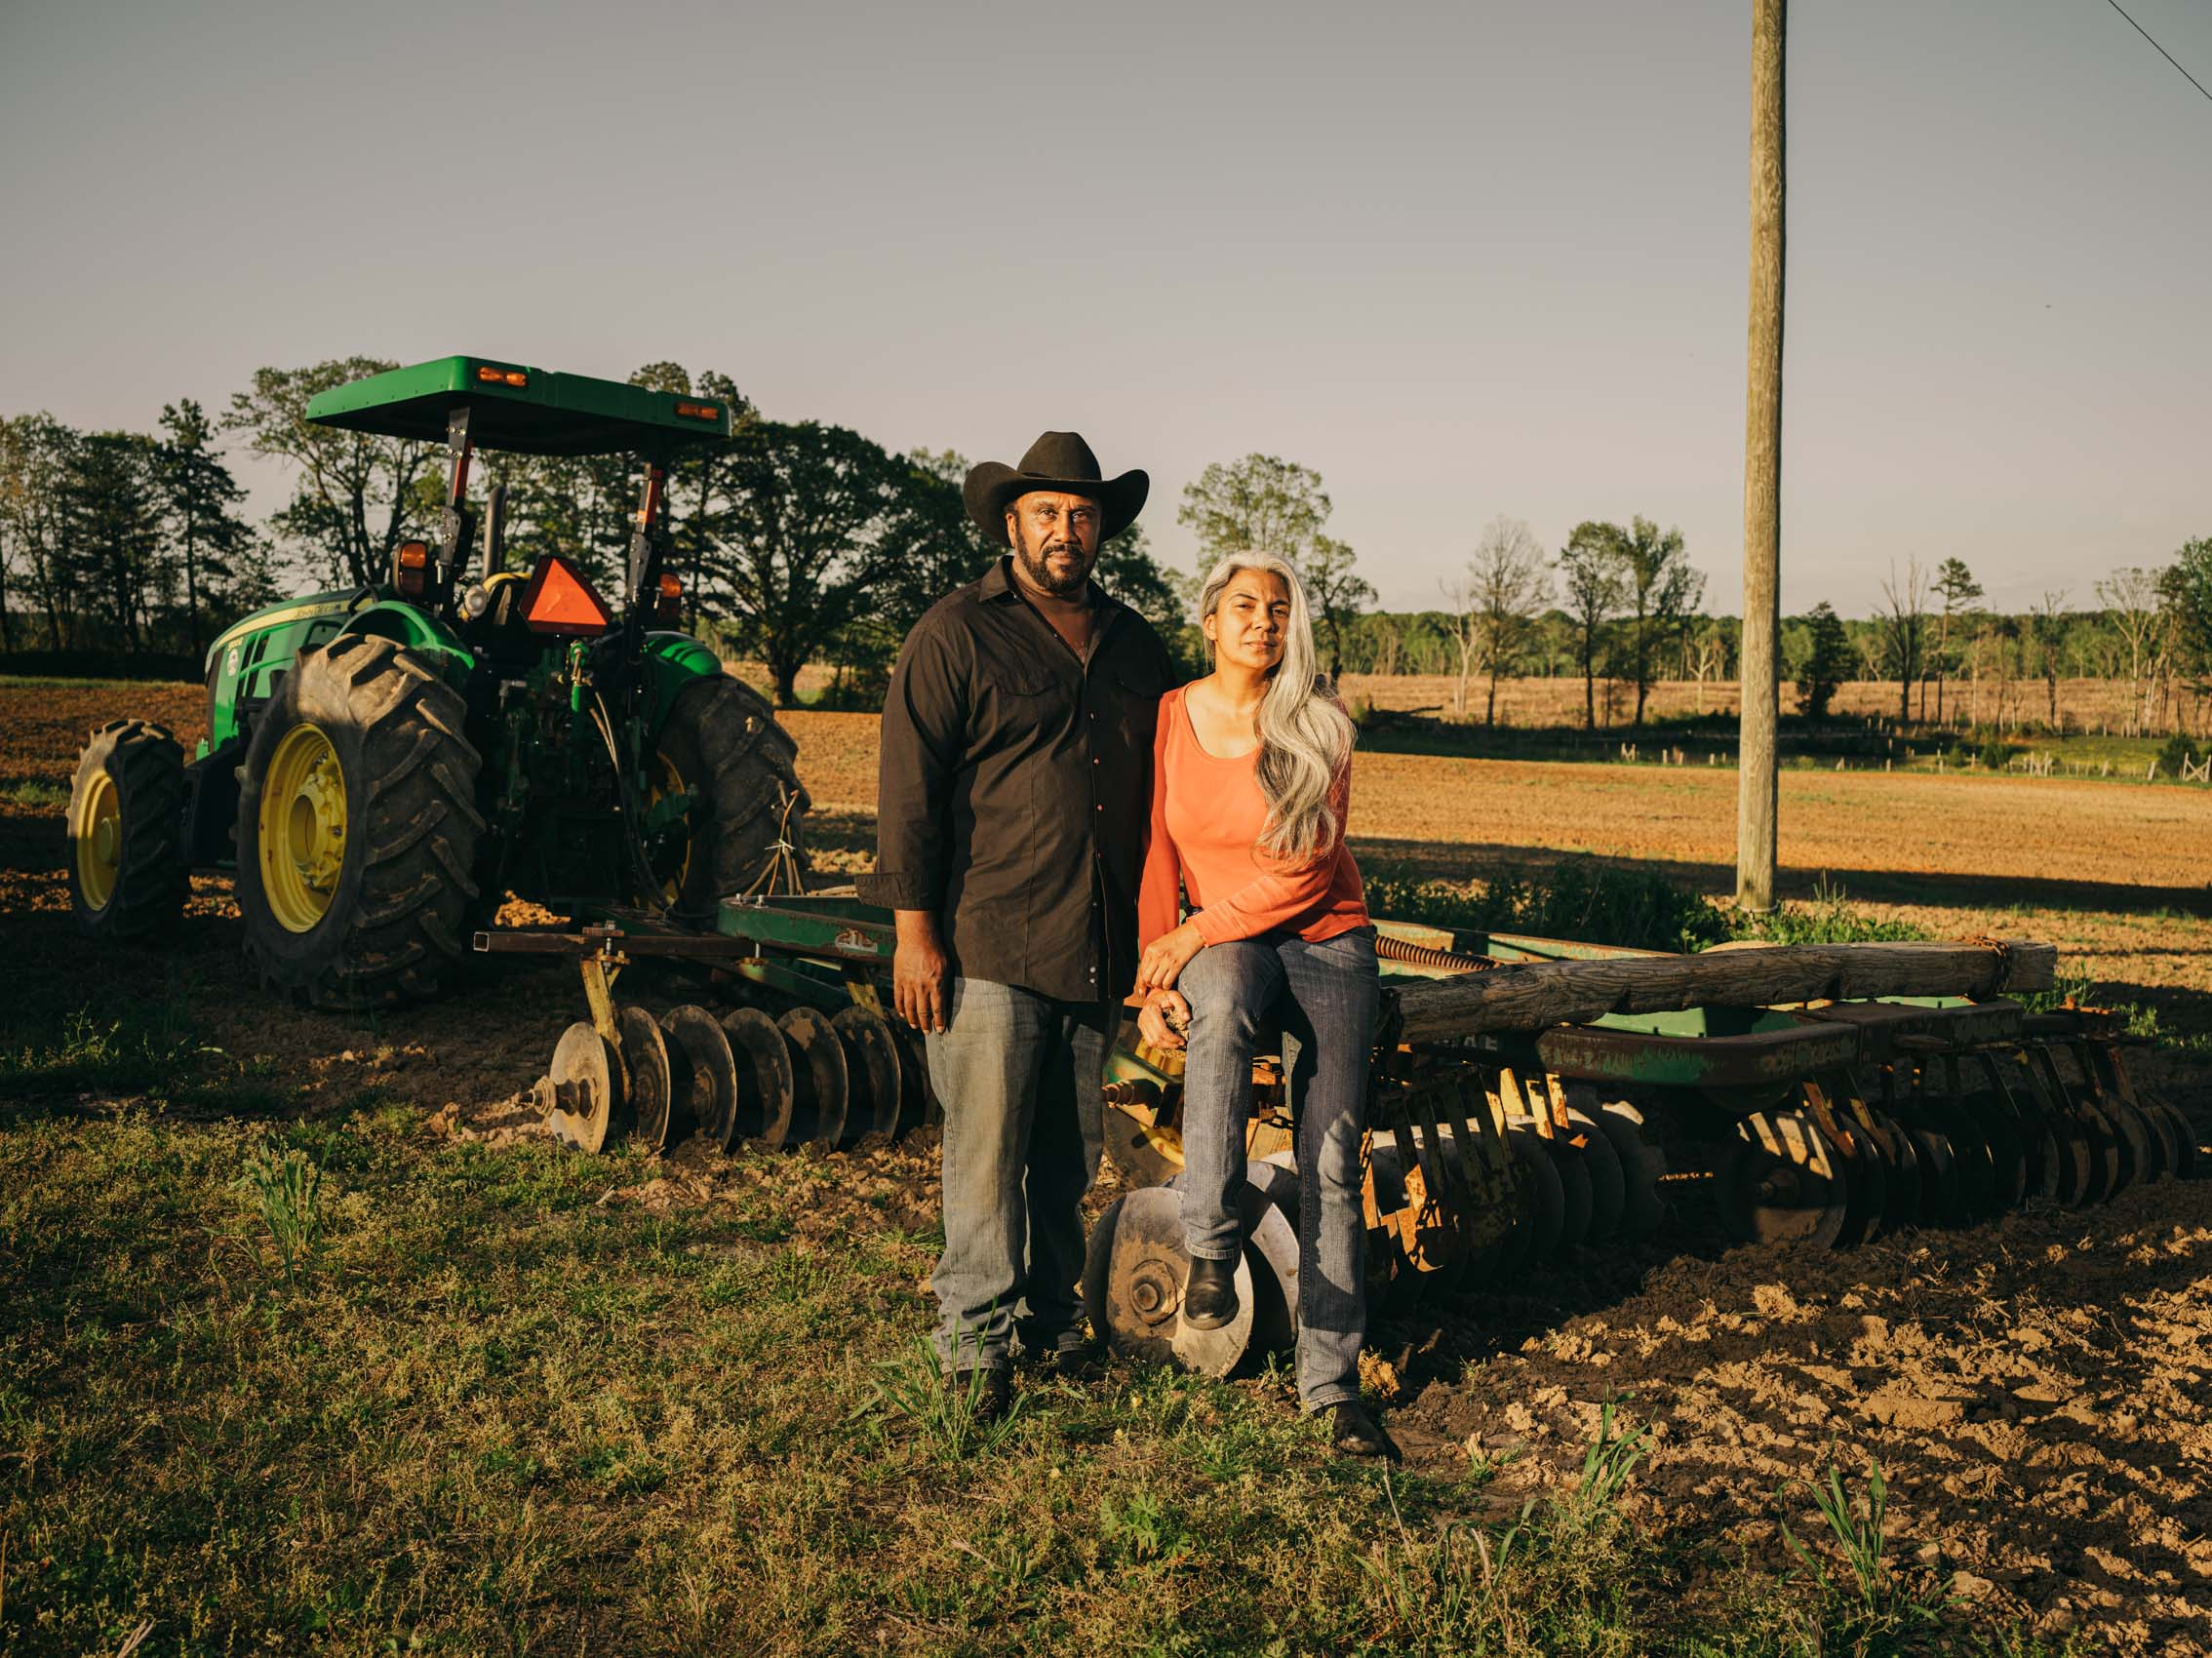 John Boyd Jr. and wife Kara Brewer Boyd on tractor